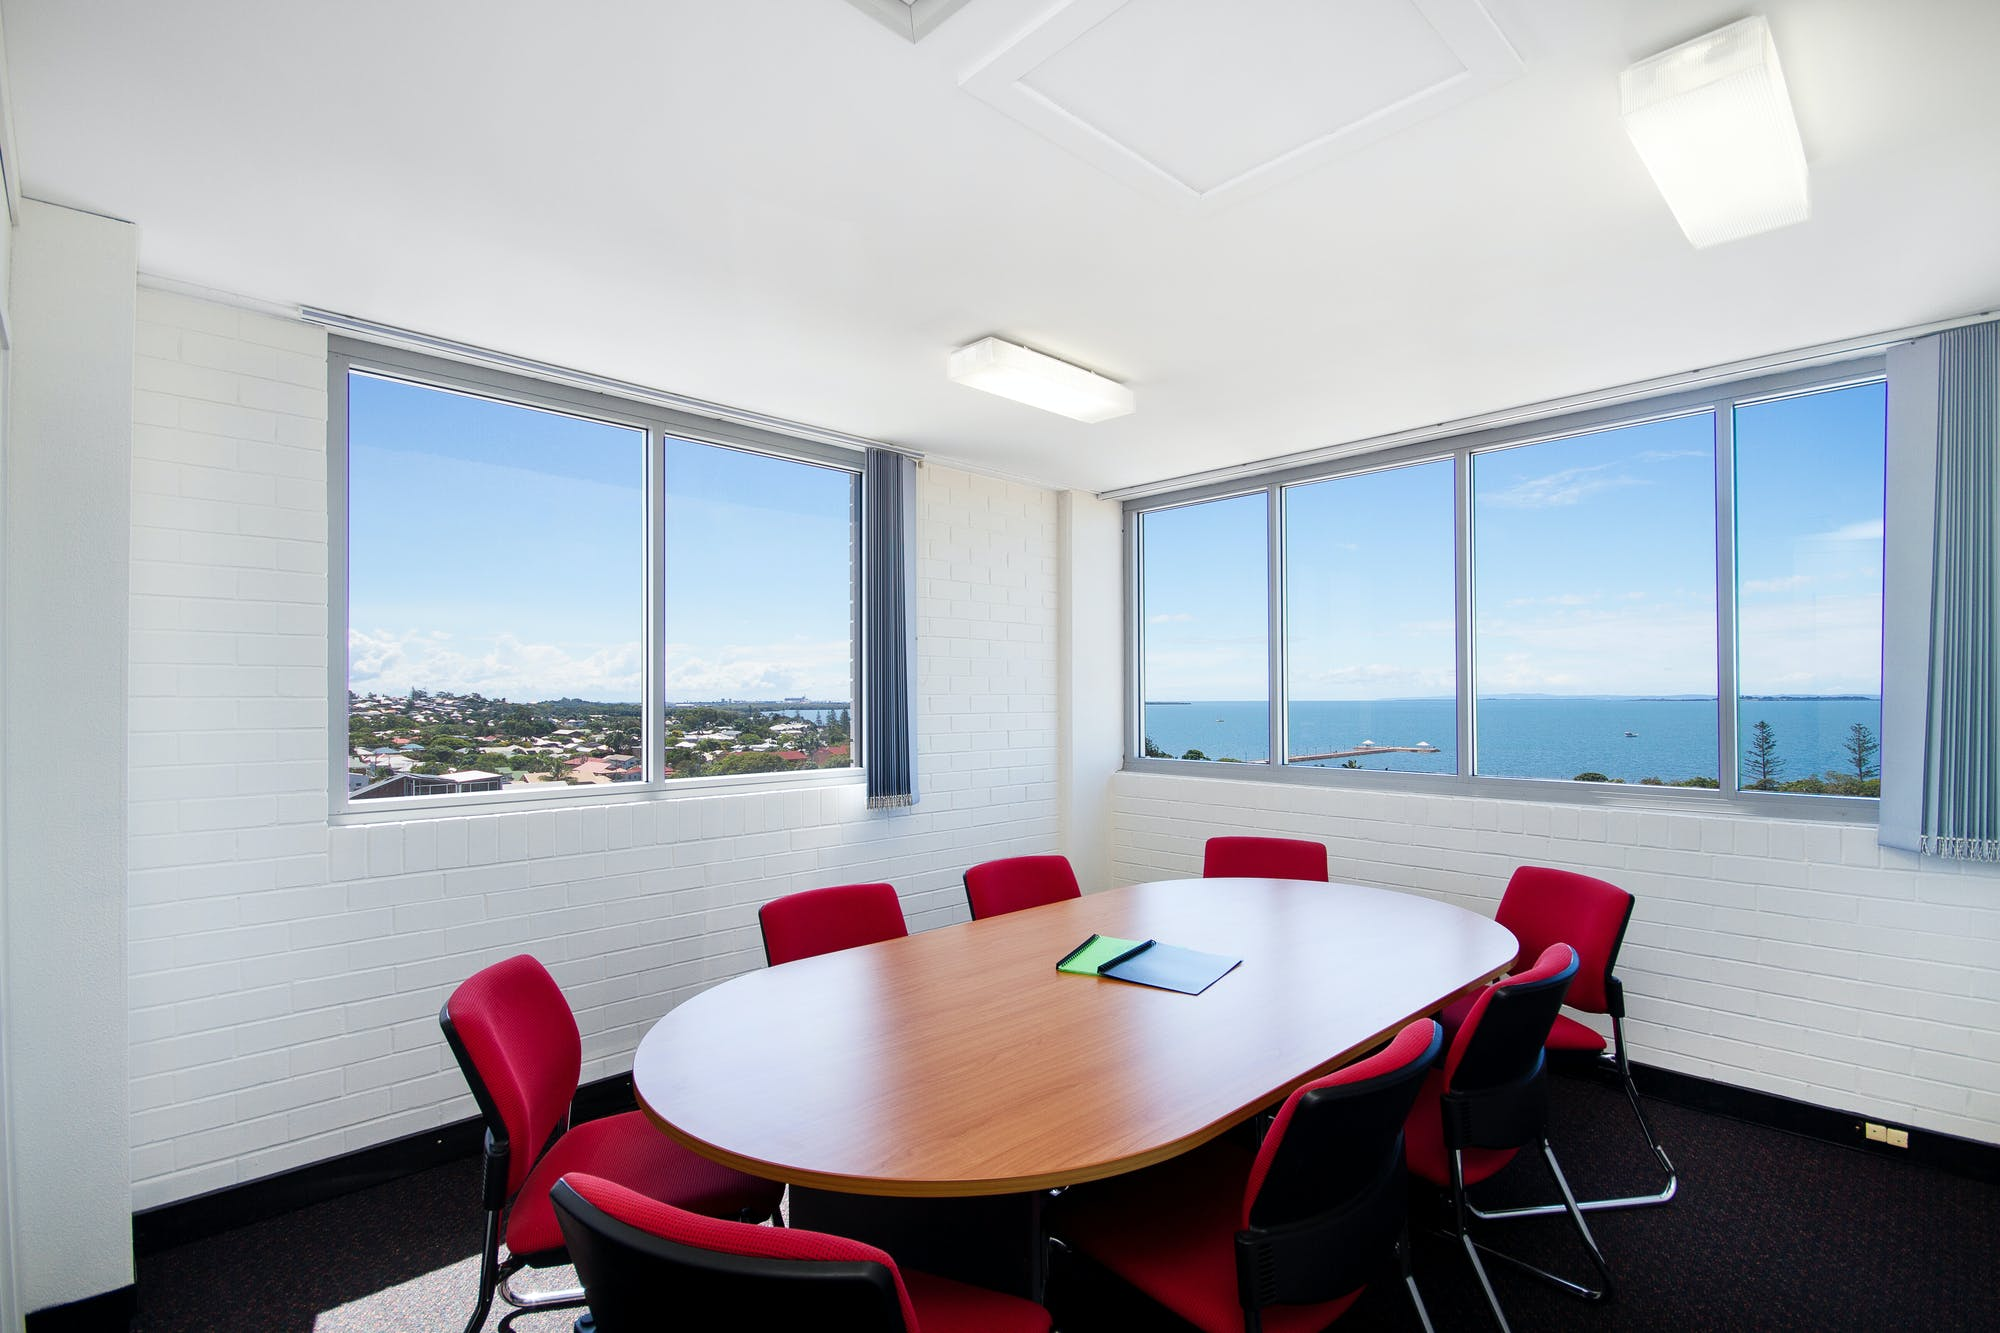 Bayviews Boardroom, meeting room at Central Business Associates, image 1